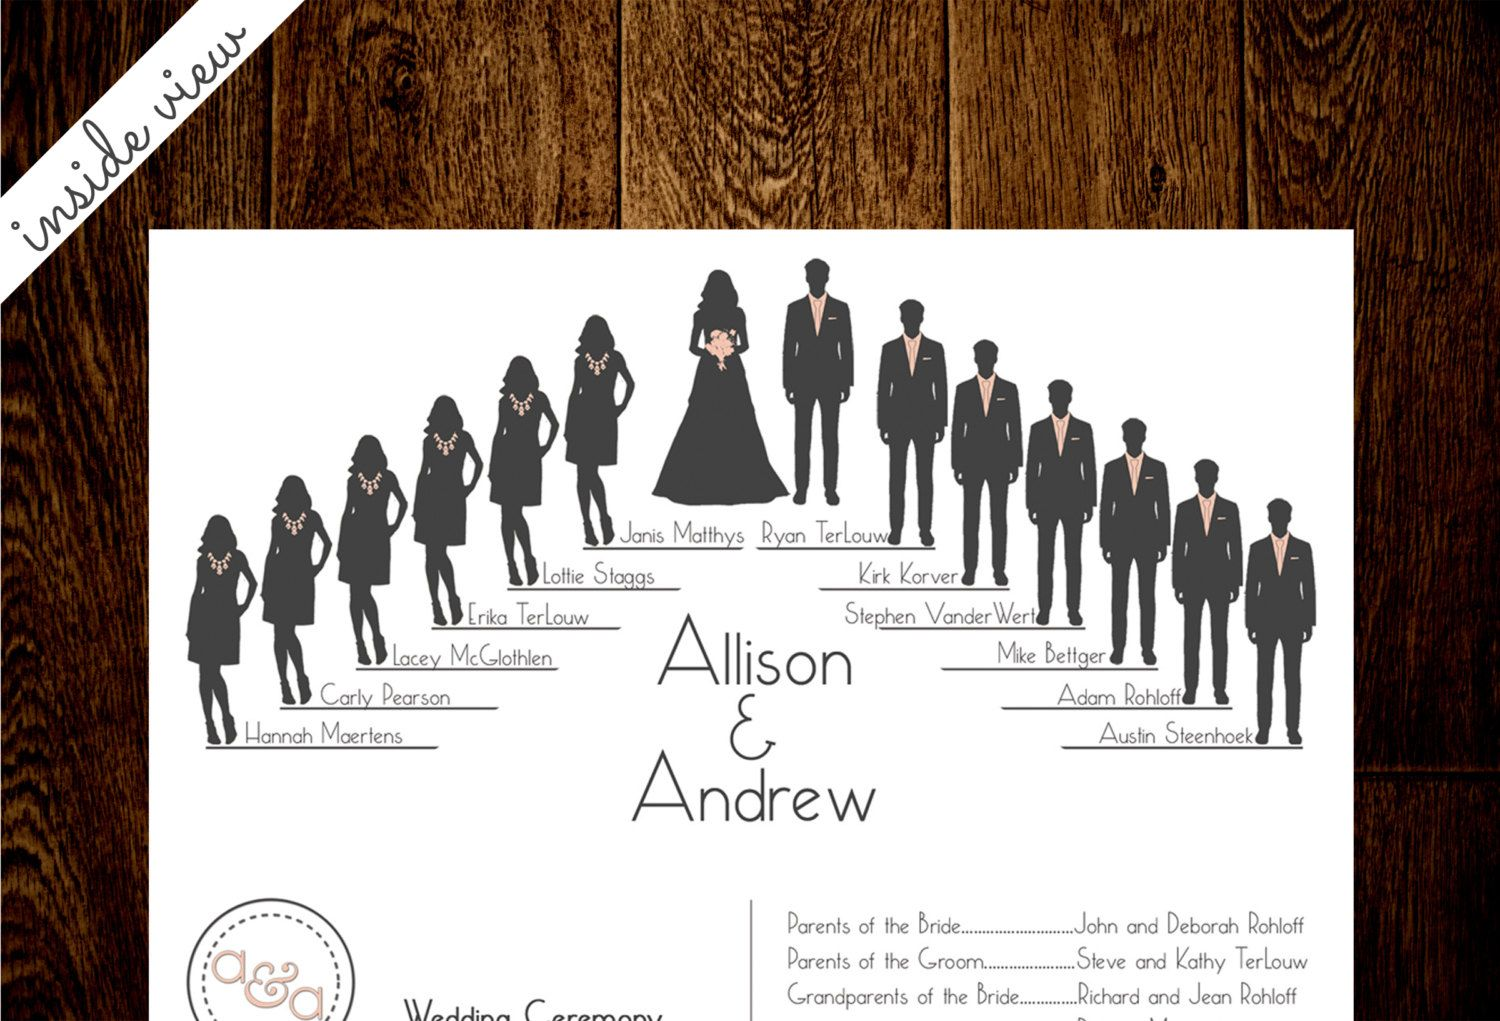 Bridal party silhouette clipart png bridal party silhouette clip art - Google Search | ideas for Jen ... png